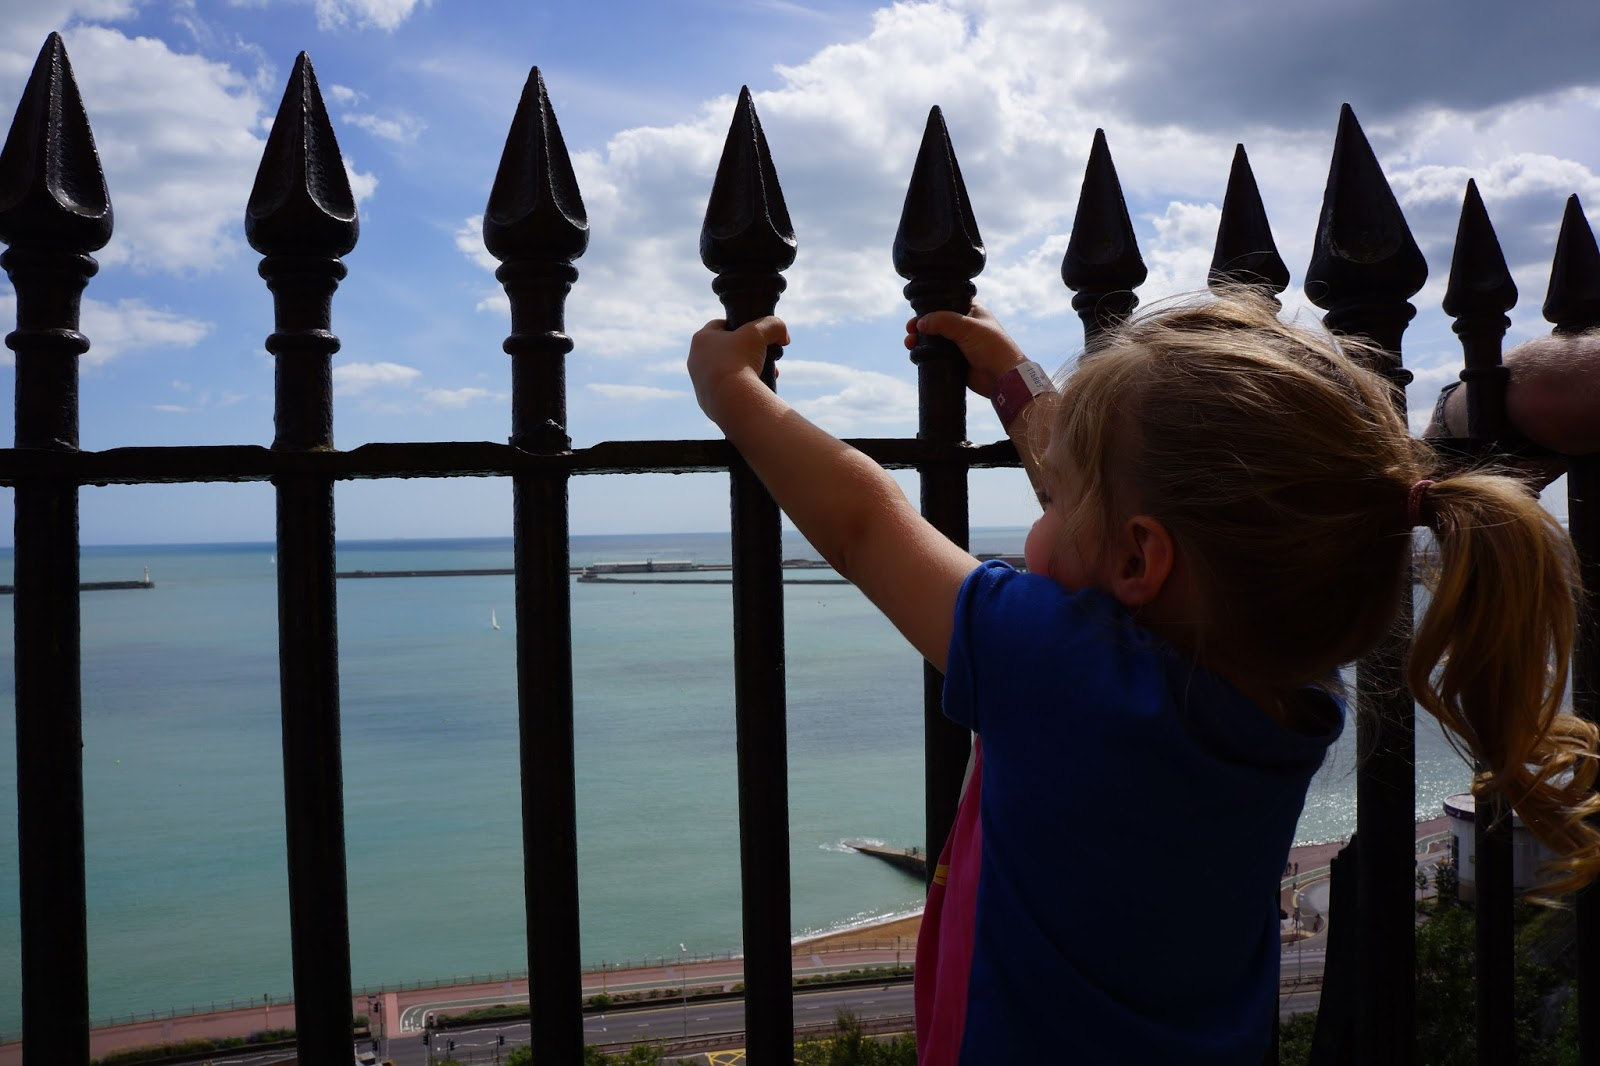 fence by dover castle seaside